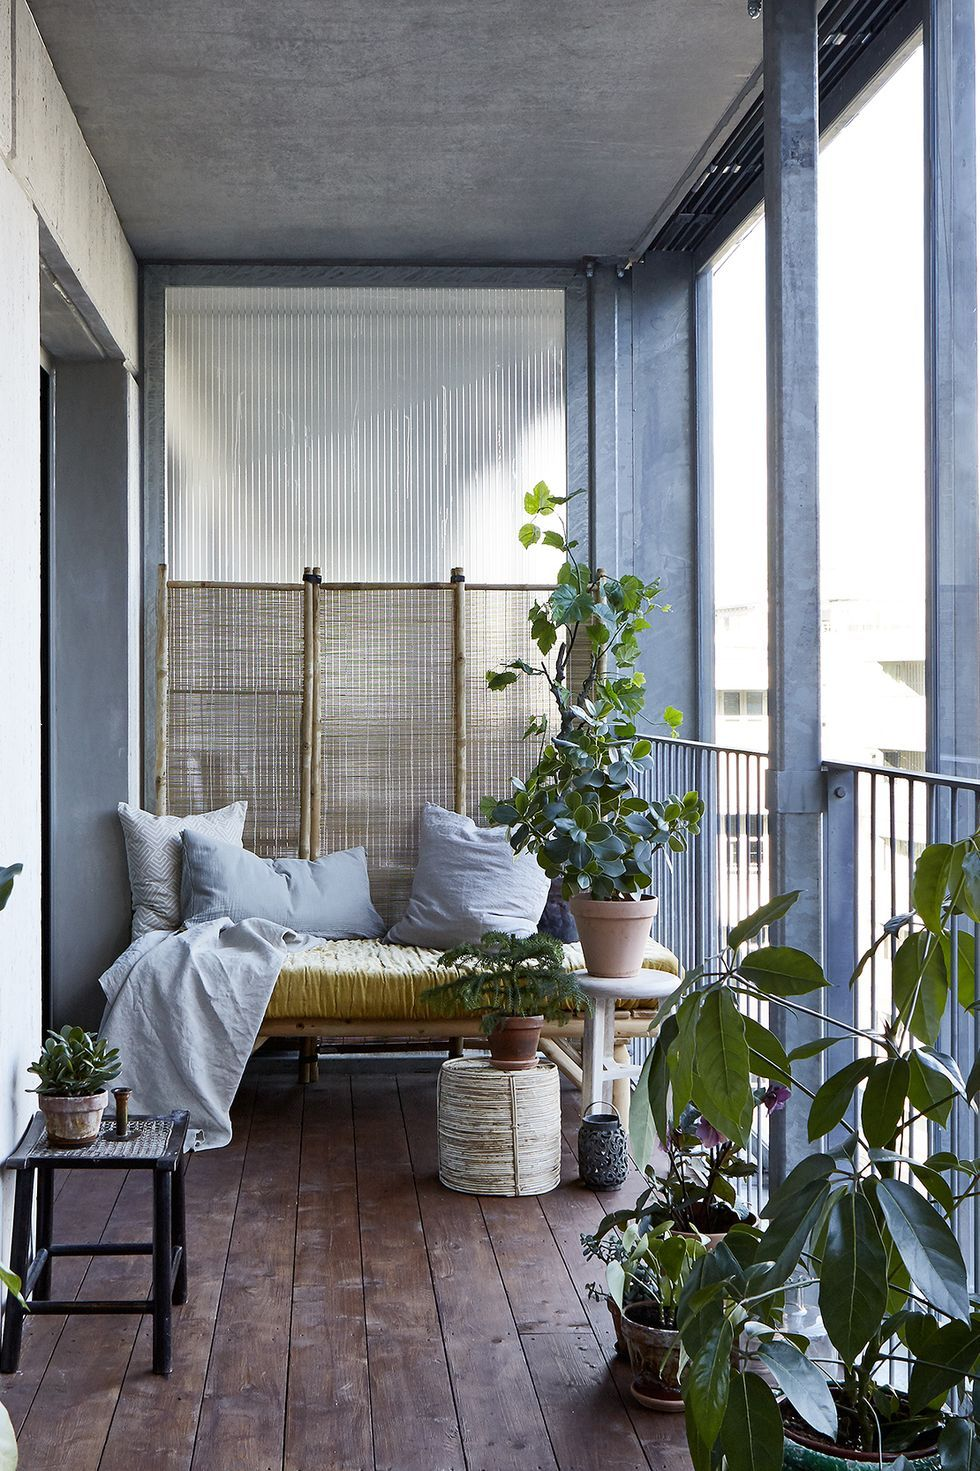 25 Balcony Design Ideas That'll Make You Want to Sit Outside Forever